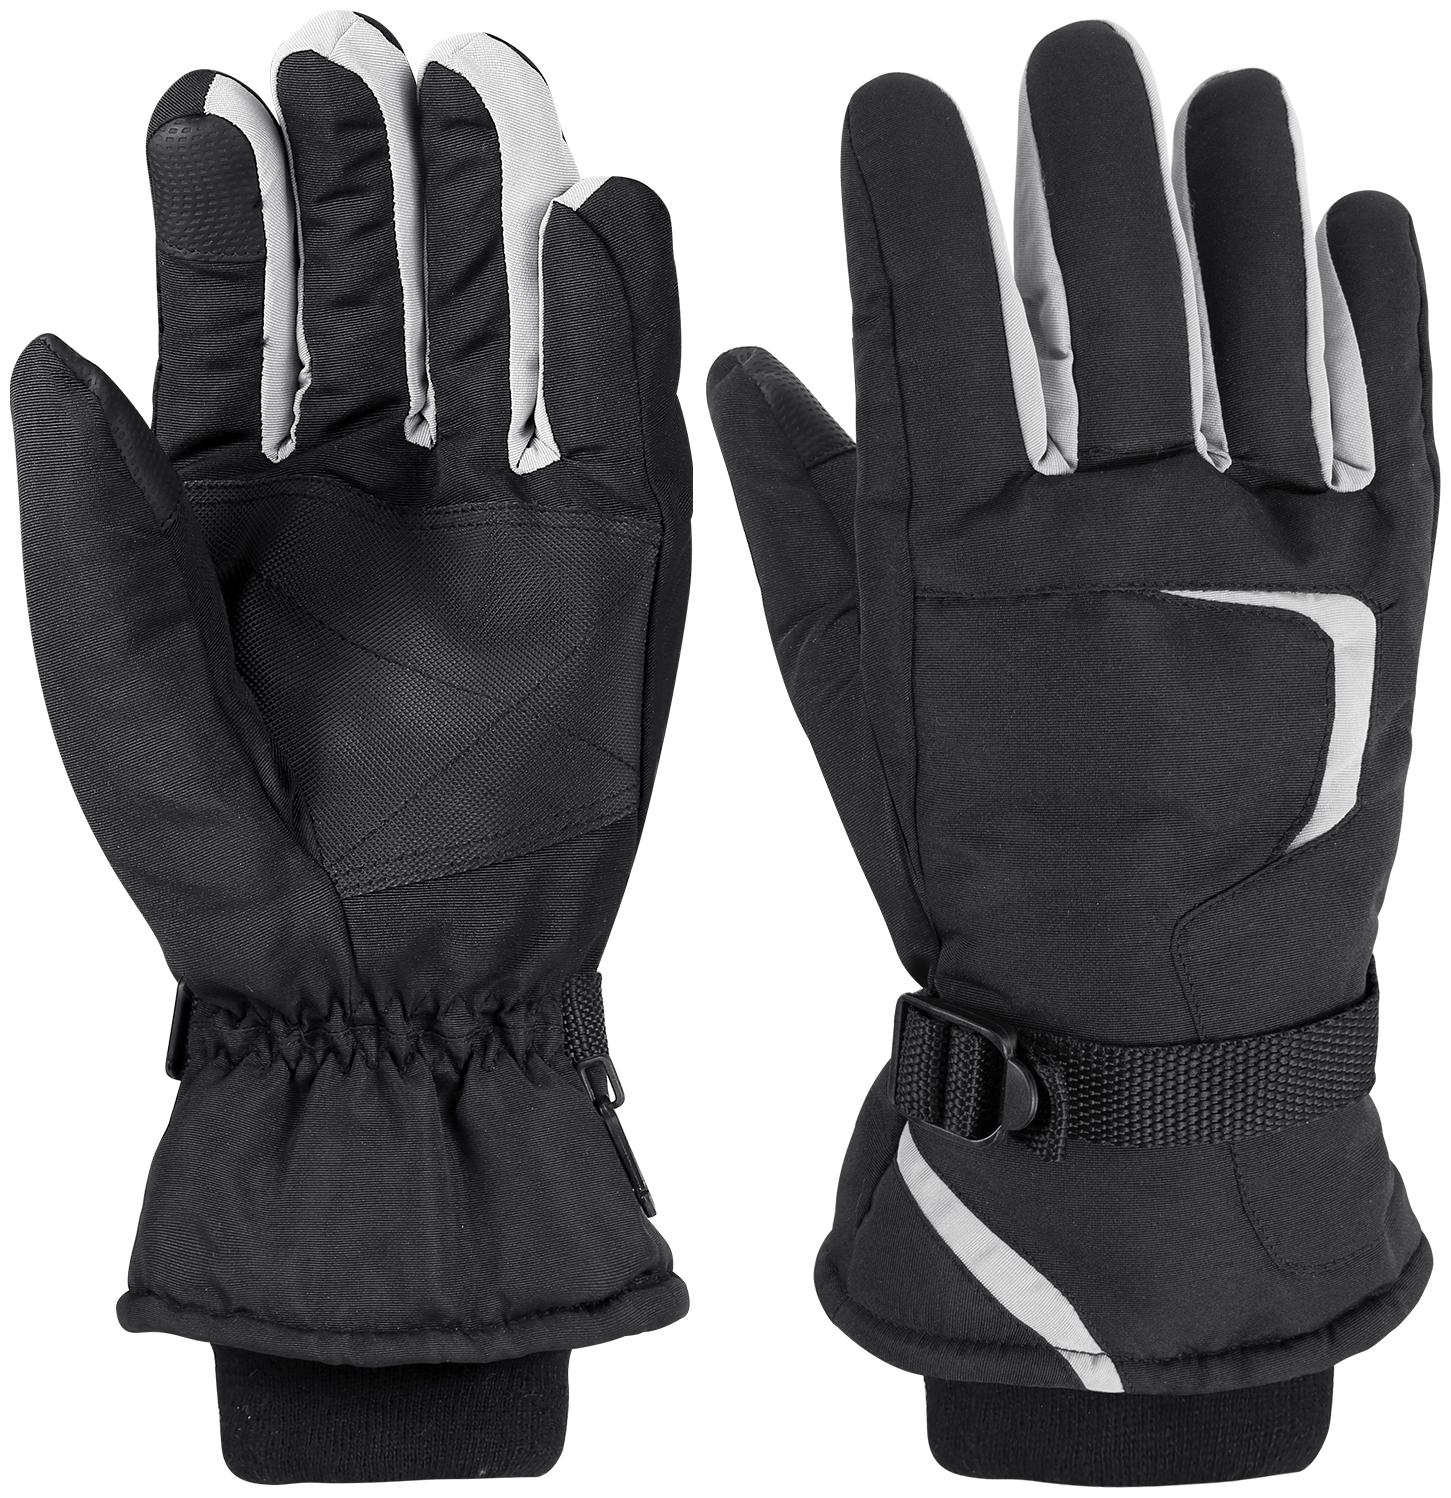 https://assetscdn1.paytm.com/images/catalog/product/A/AC/ACCQUXXA-GLOVE-M-S-319629F5C0EFD1/1607693179207_0..jpg